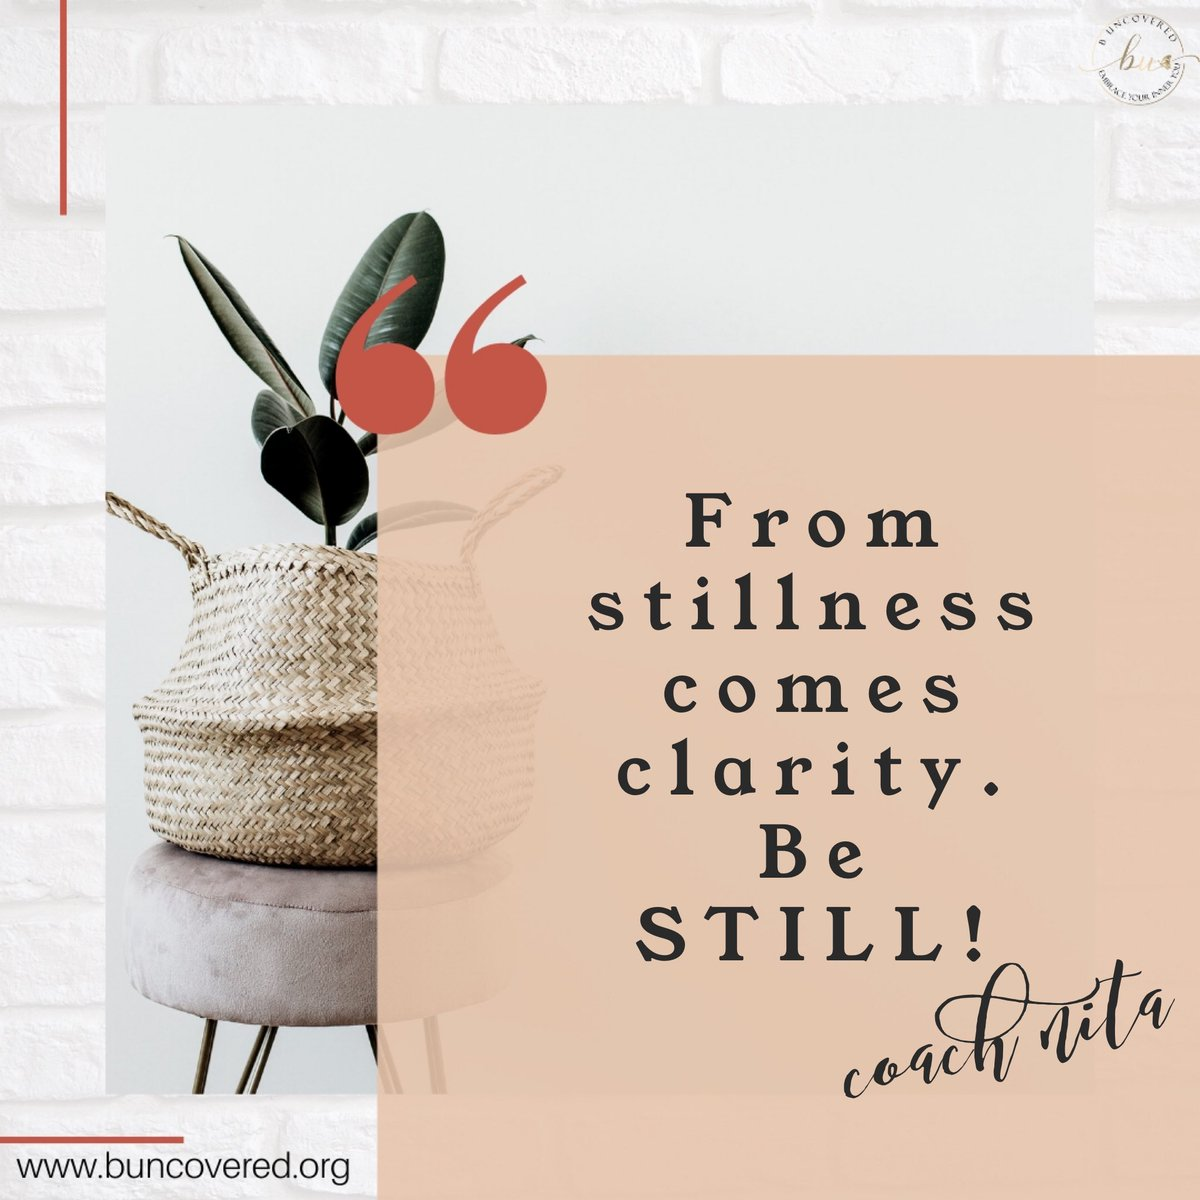 When you become challenged in your spirit and frustrated in your mind, B Still. In stillness God will give you the wisdom and peace that fosters the clarity to make sound choices in your life for yourself and those around you. http://www.buncovered.org #wordsoftruth #bestillpic.twitter.com/pxXXAflzny